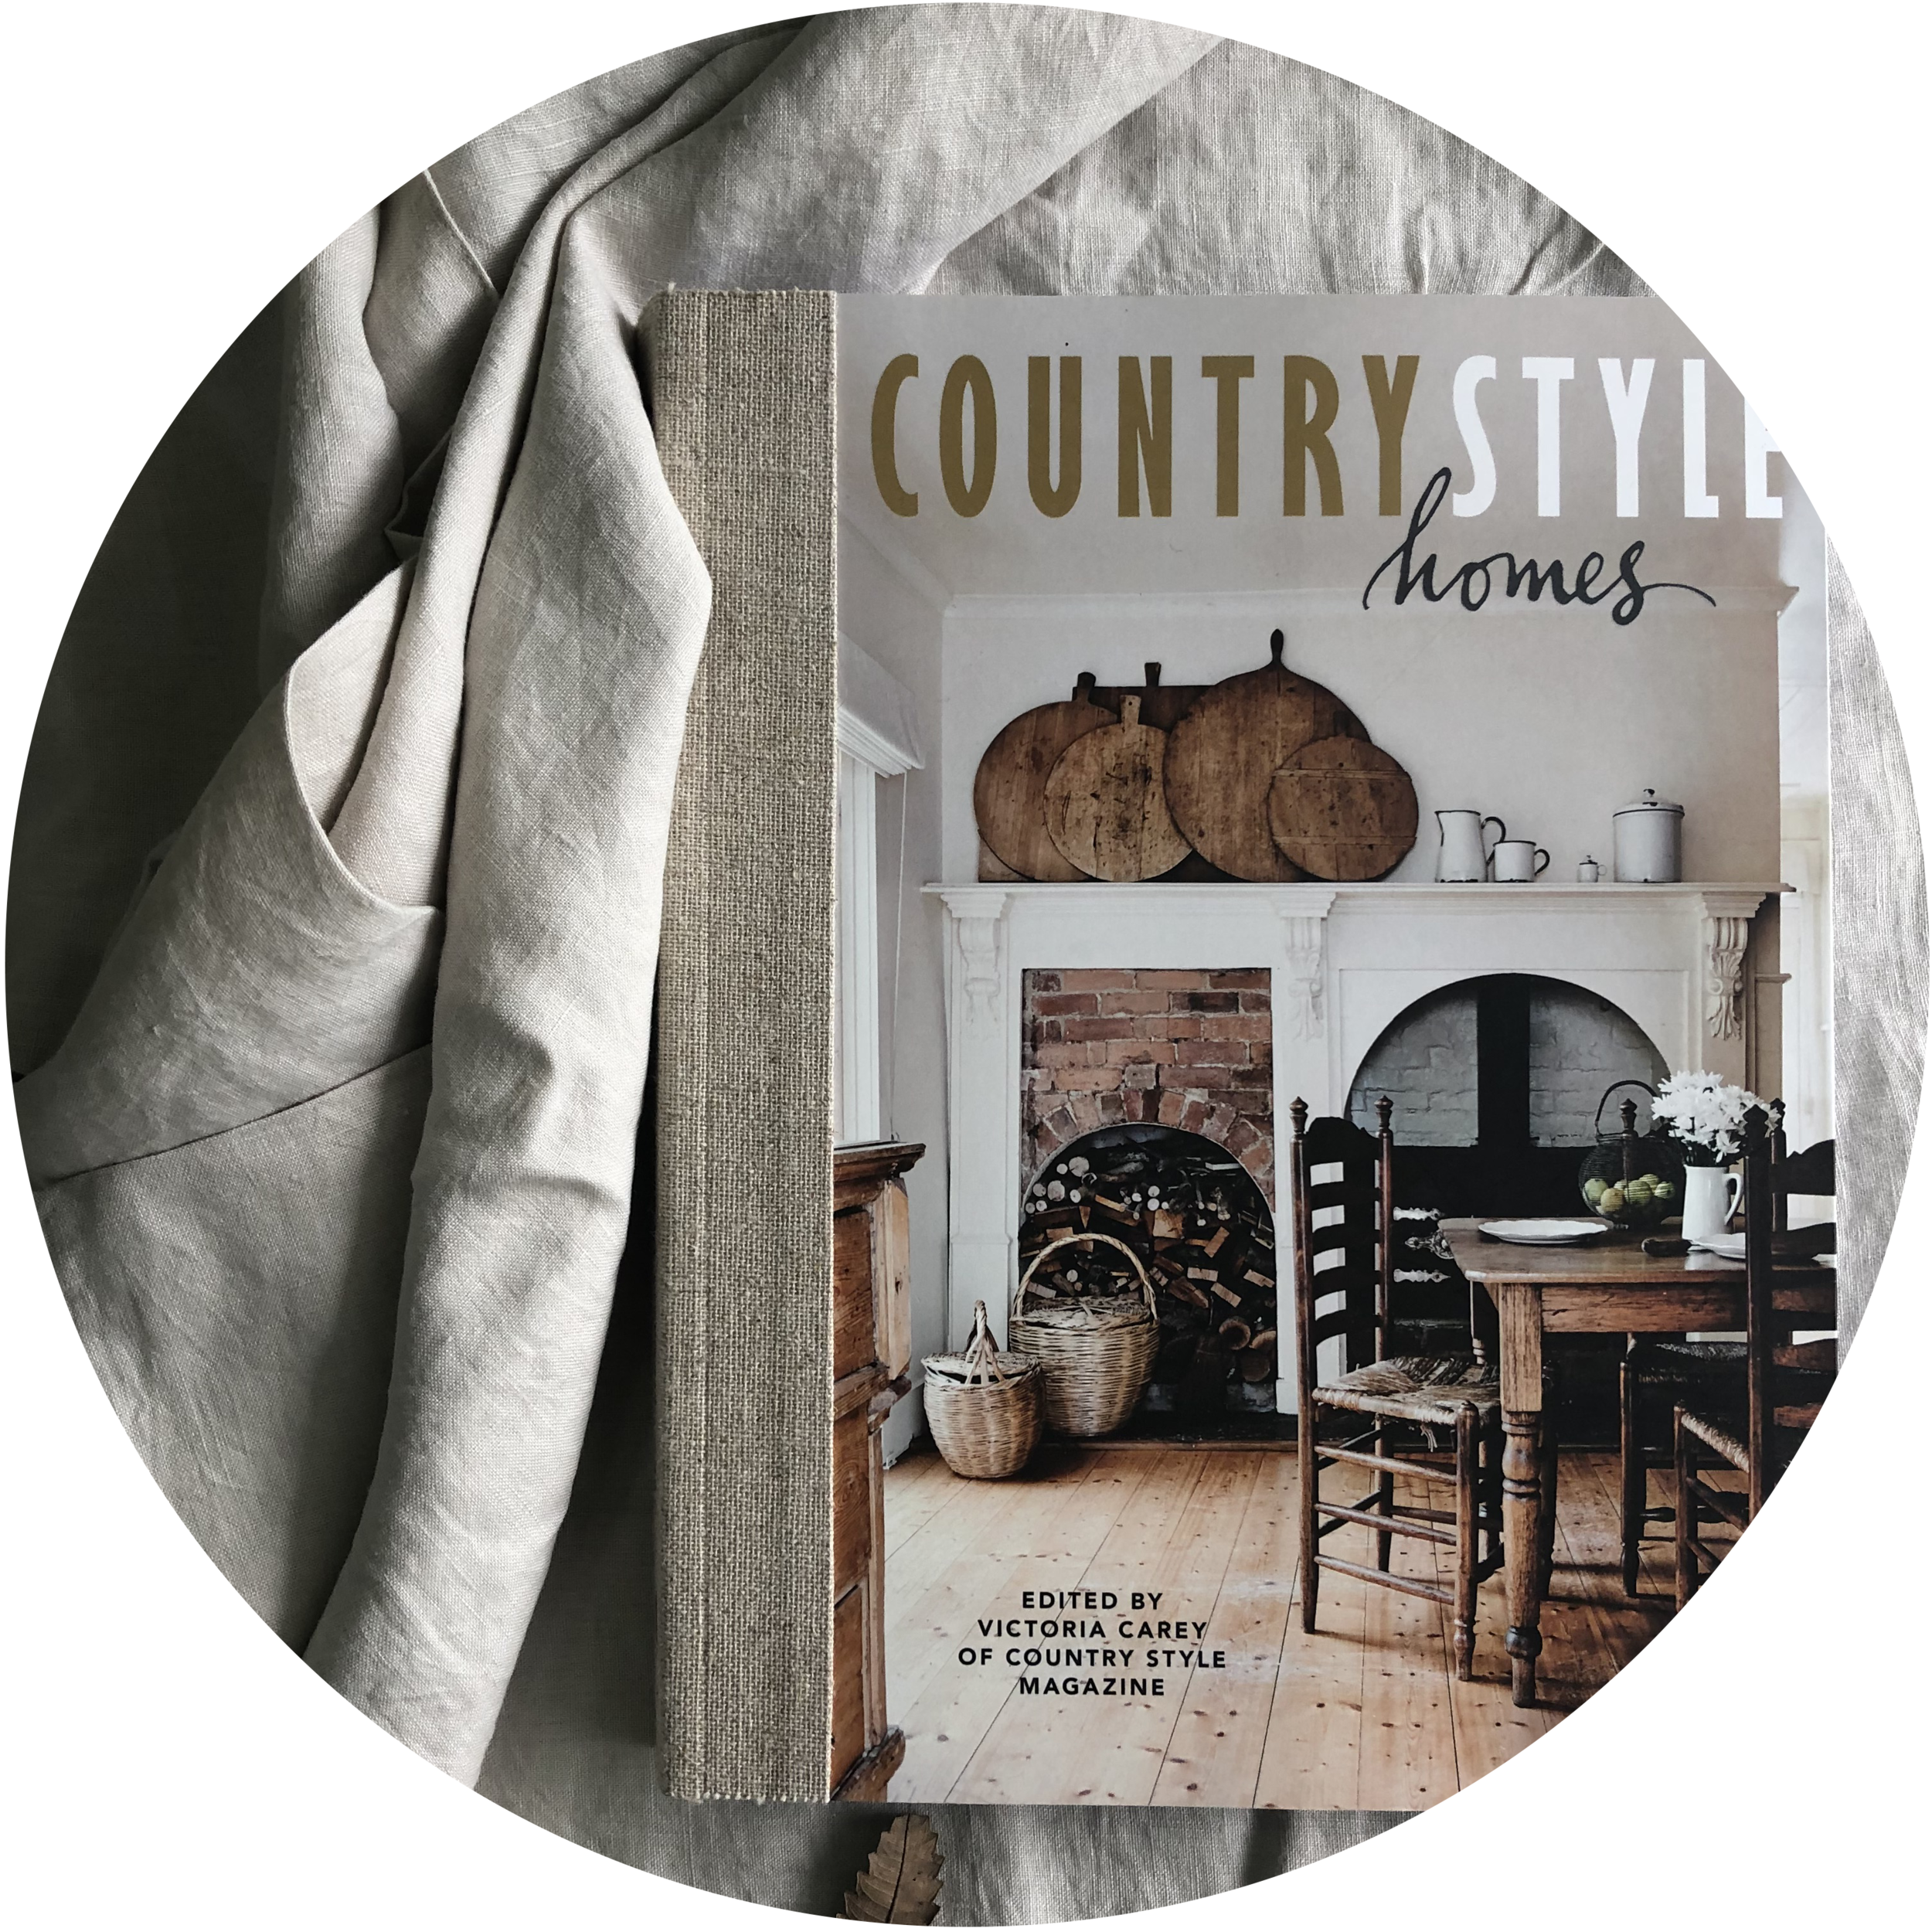 Country Style Homes - Victoria Carey